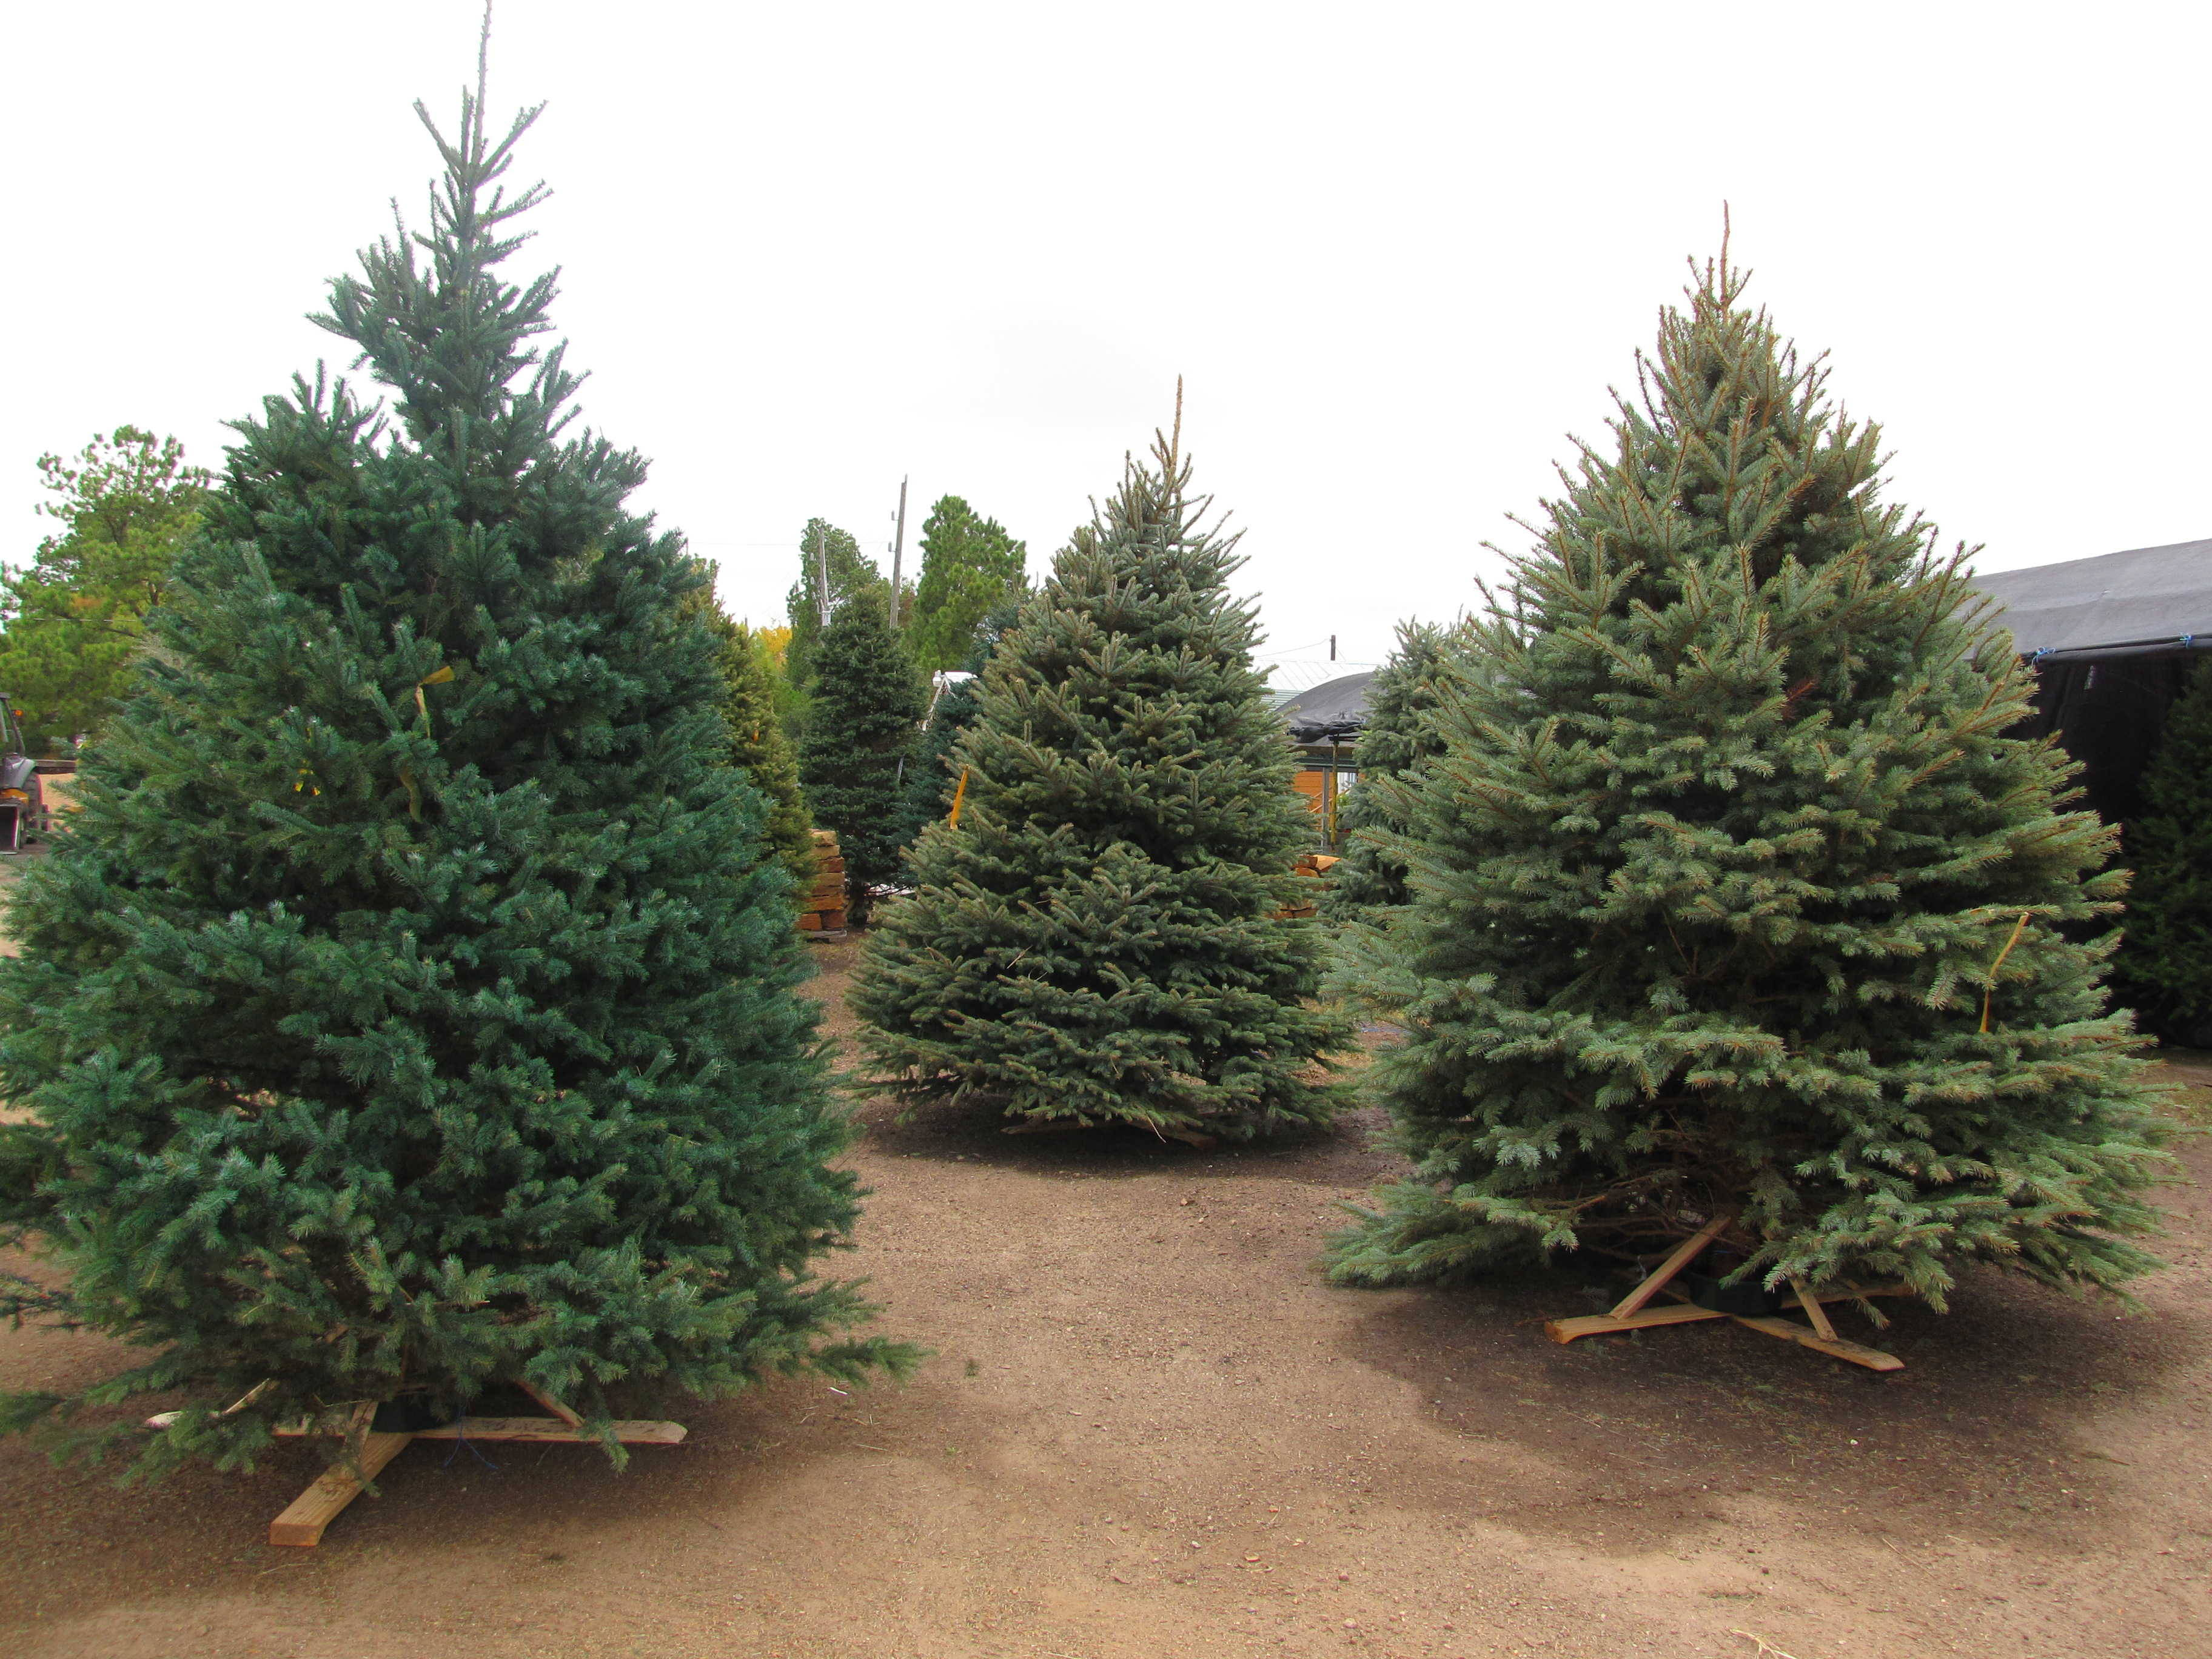 Seasonal Products including Christmas Trees and Fireworks at J&J Nursery, Spring, TX.